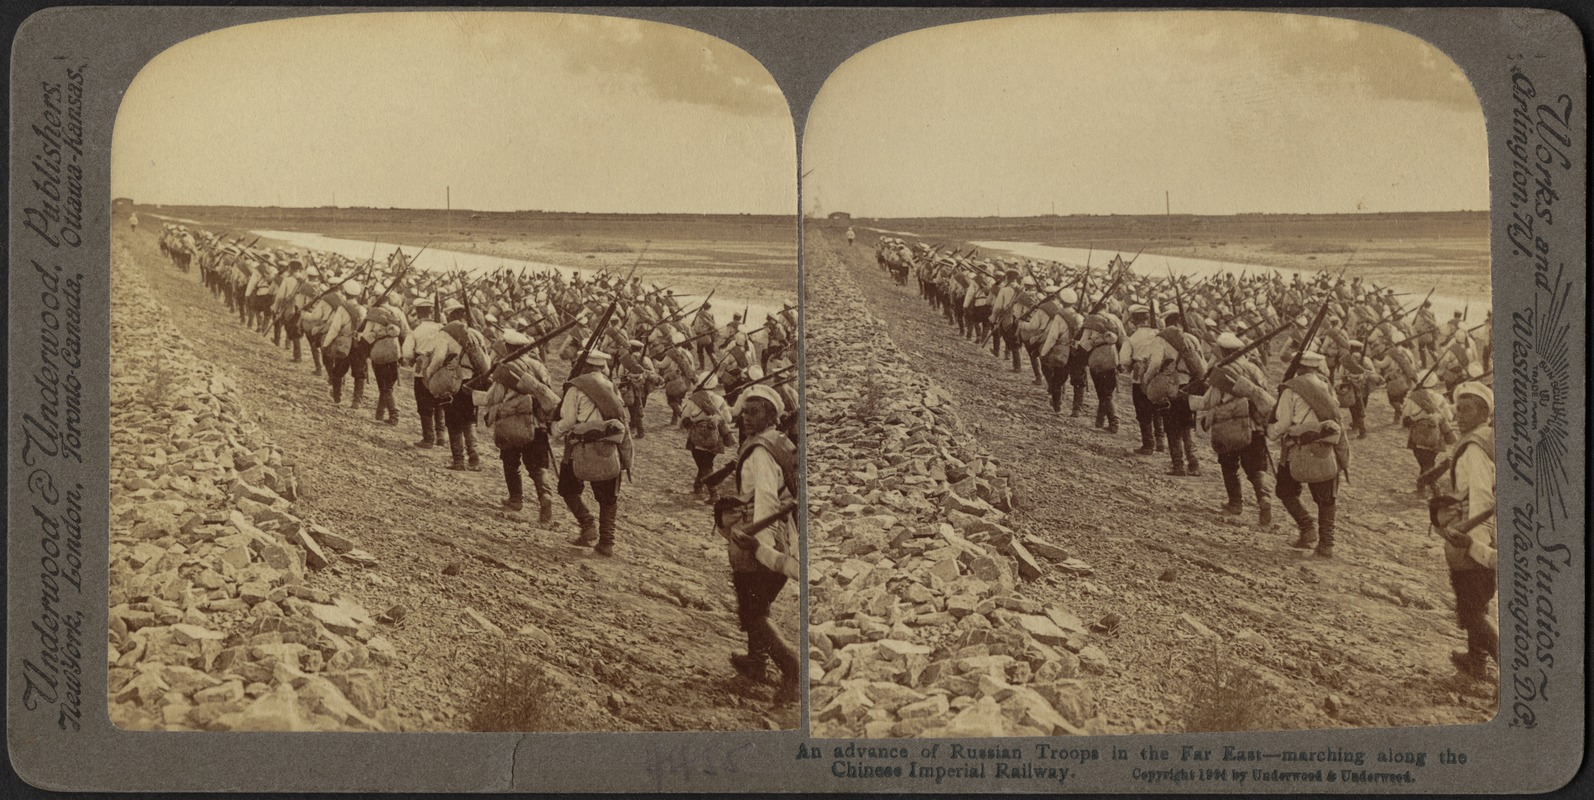 An advance of Russian troops in the far east - marching along the Chinese Imperial Railway